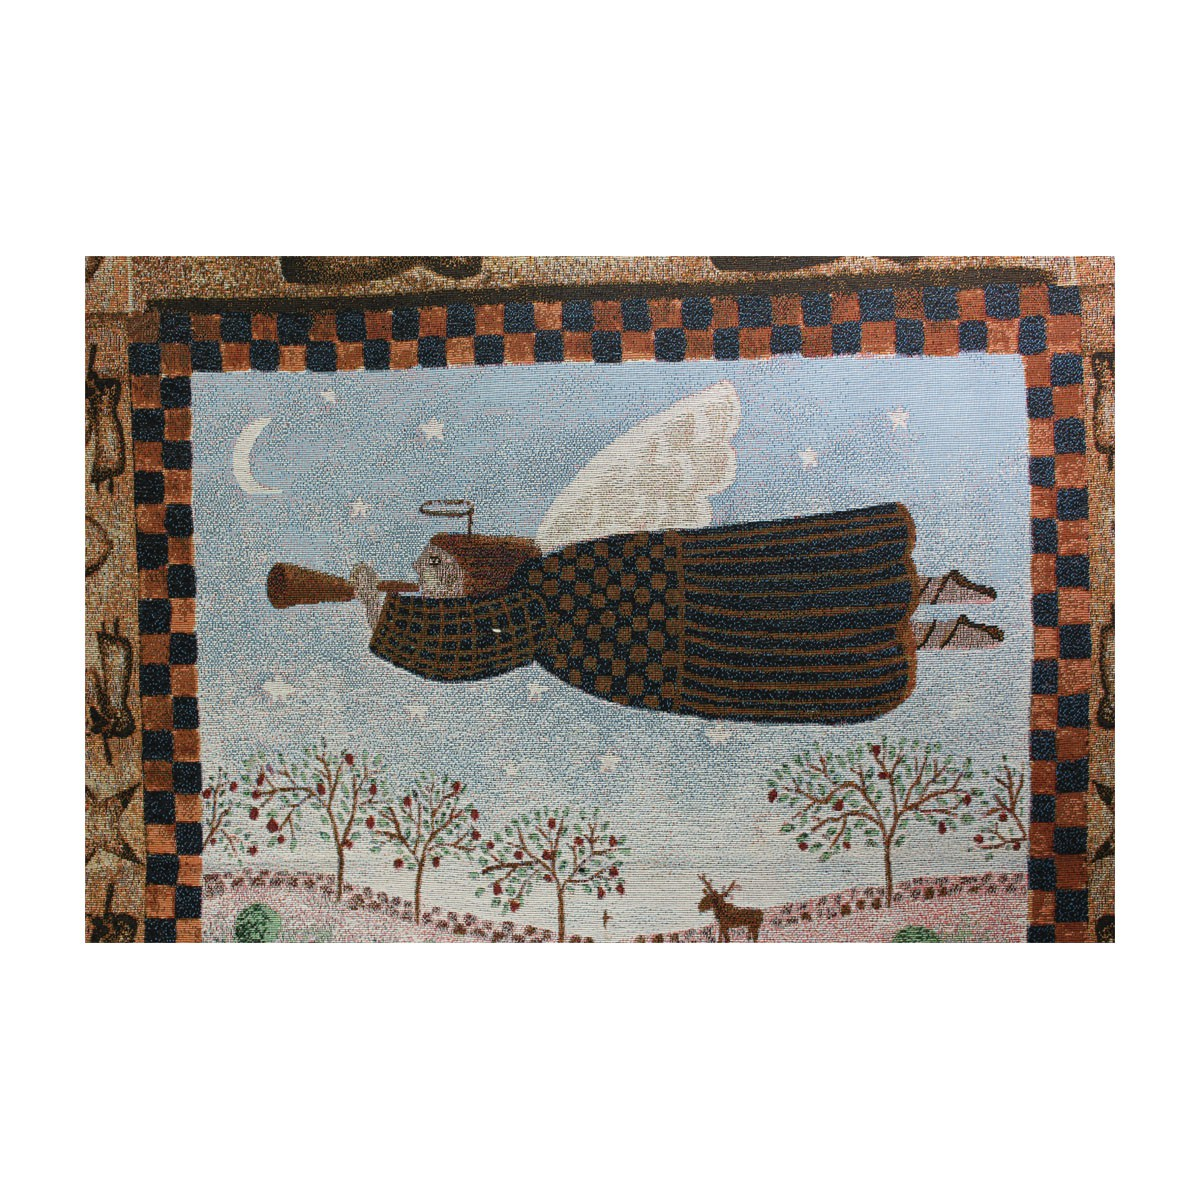 Angel Hanging Wall Quilt AcrylicPolyester 26W x 36L Bed Quilt Quilt Bed Quilts